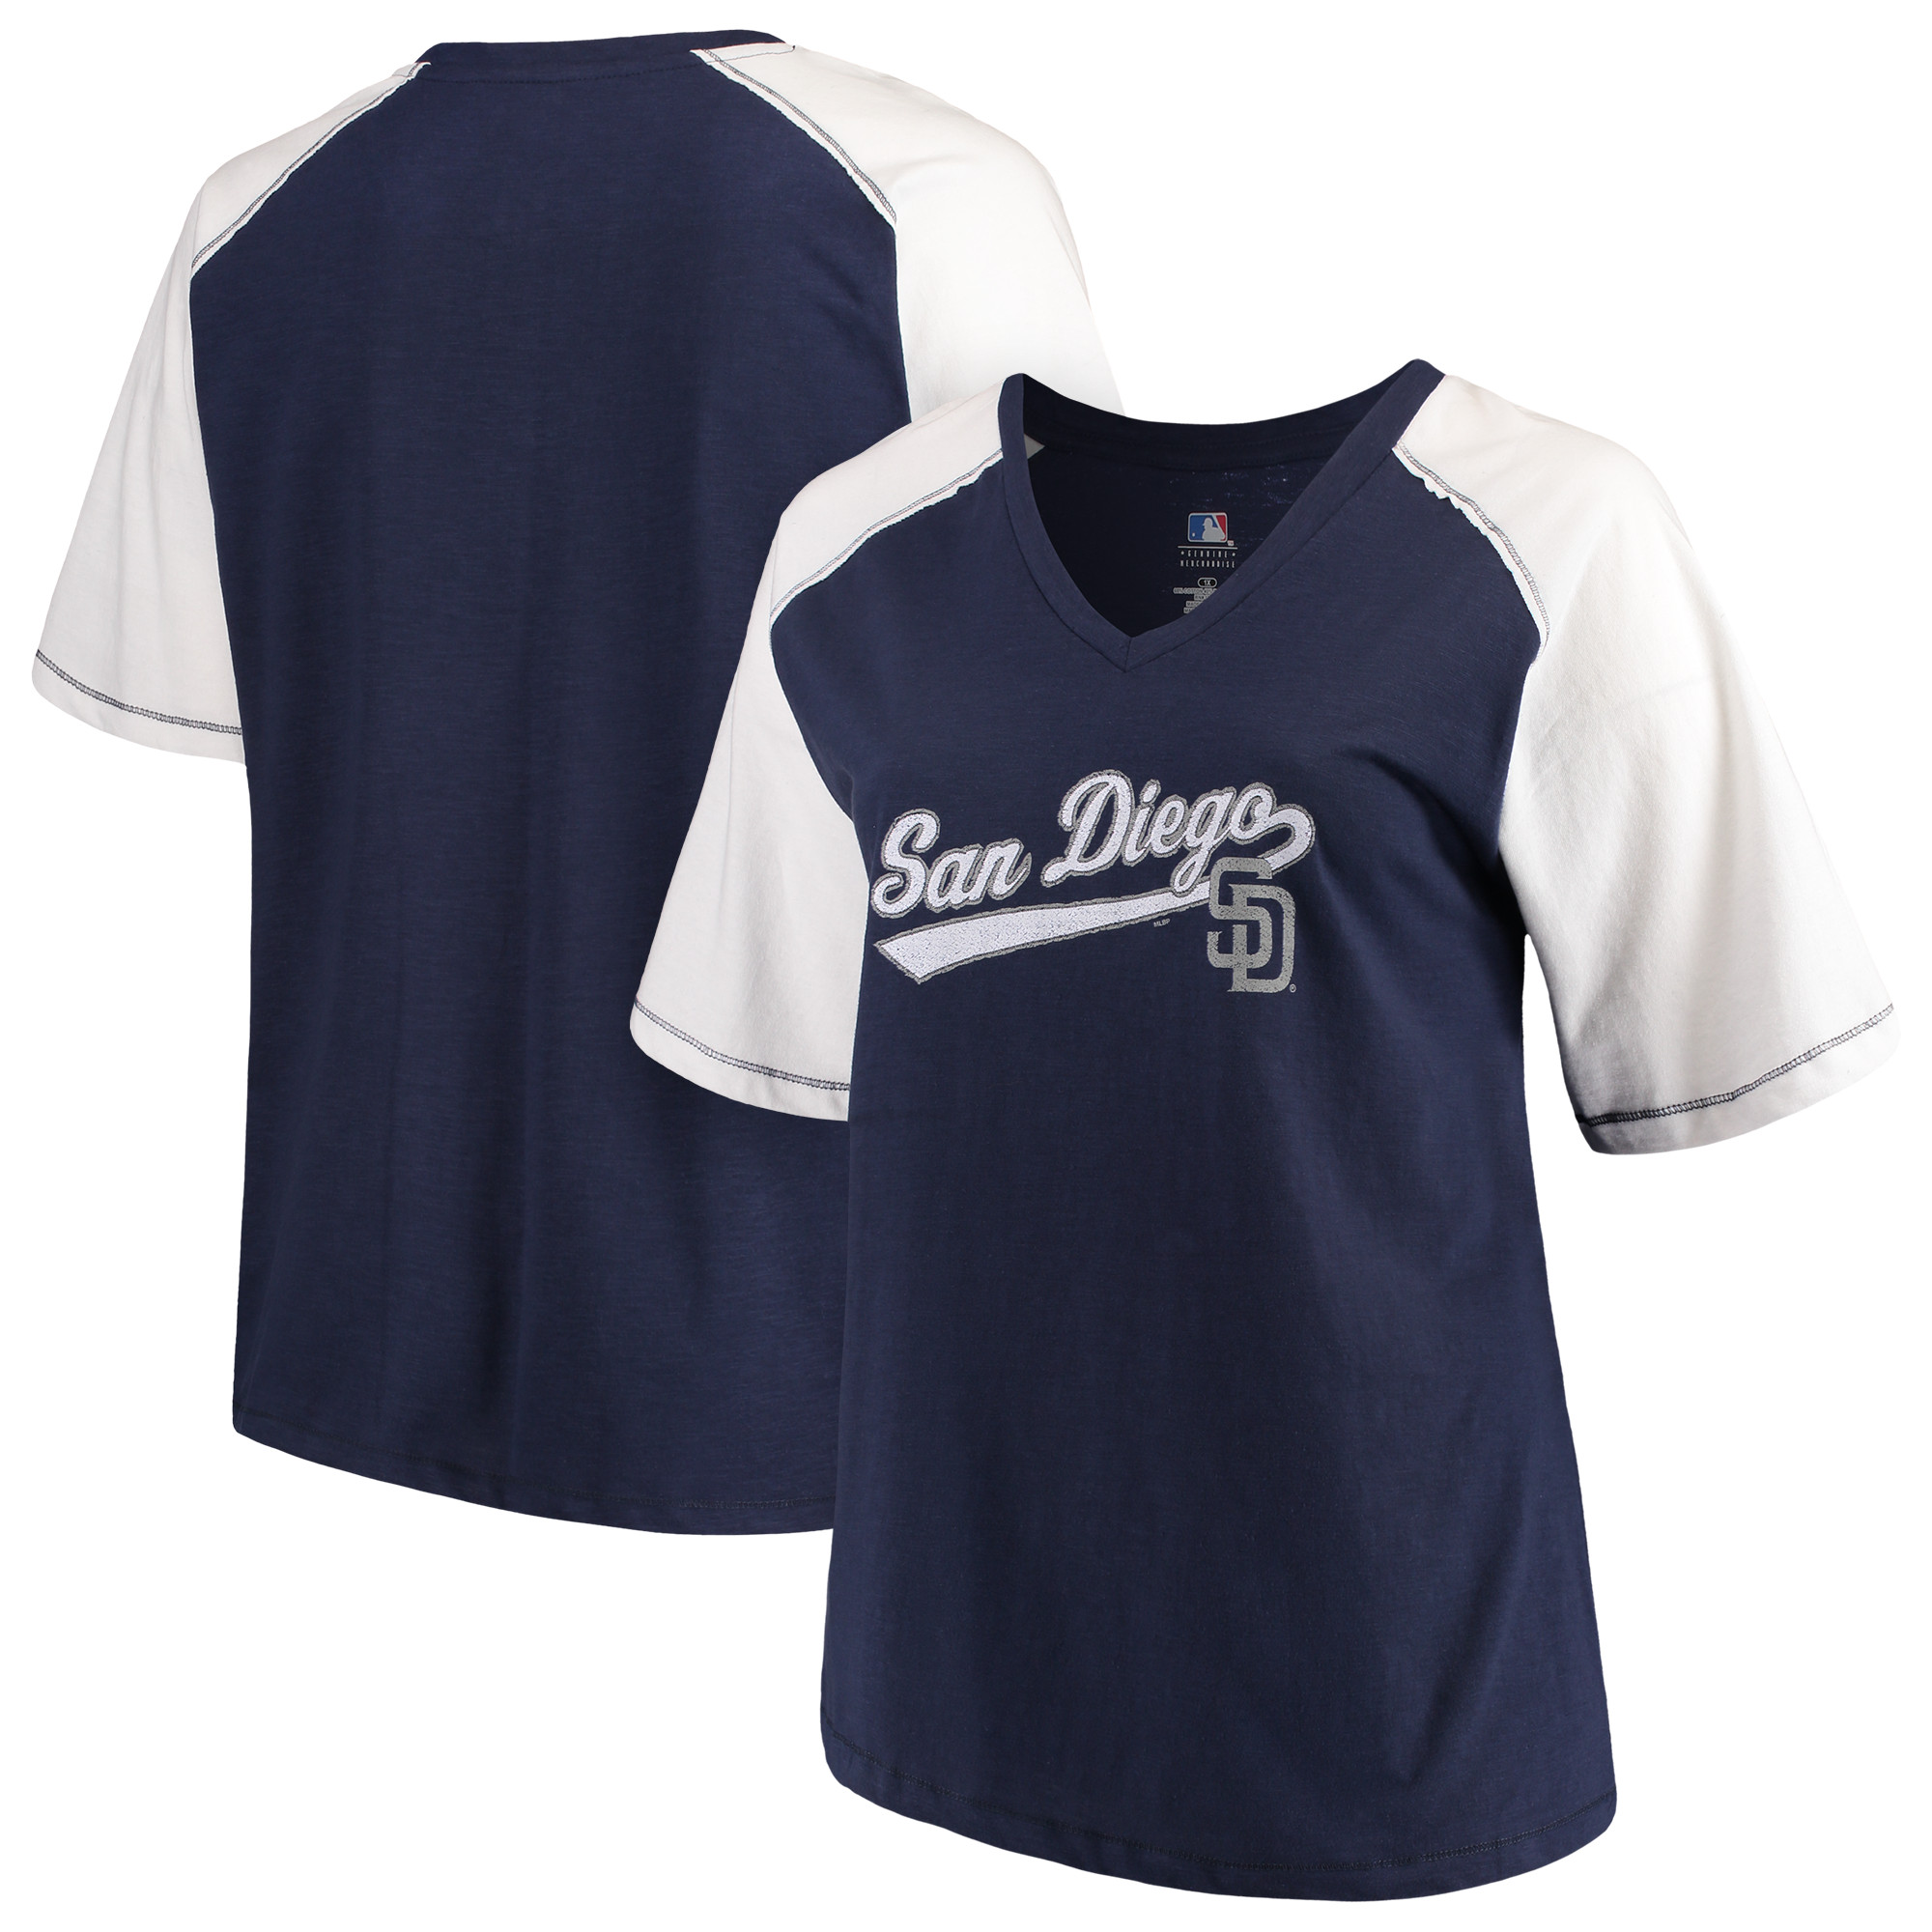 Women's Majestic Navy/White San Diego Padres Plus Size High Percentage Raglan V-Neck T-Shirt